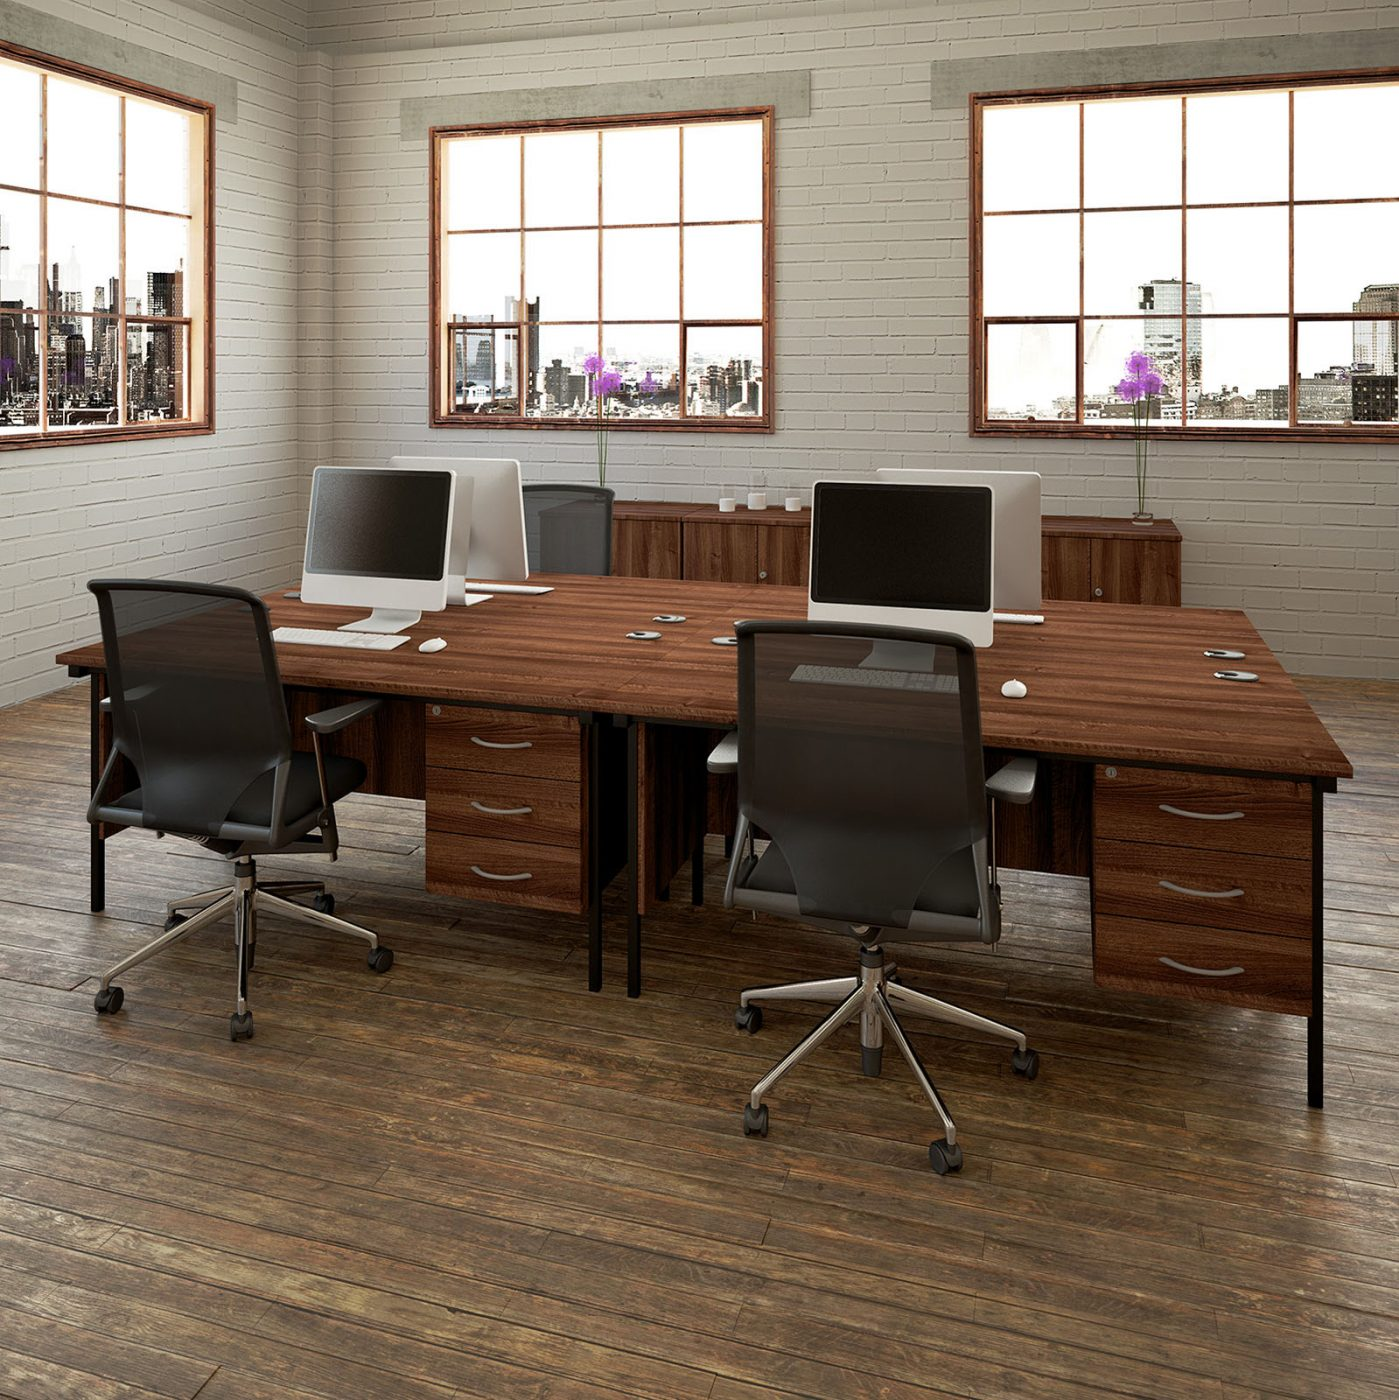 paolo desk, walnut desk, MFC, teacher desk, basic desk, storage